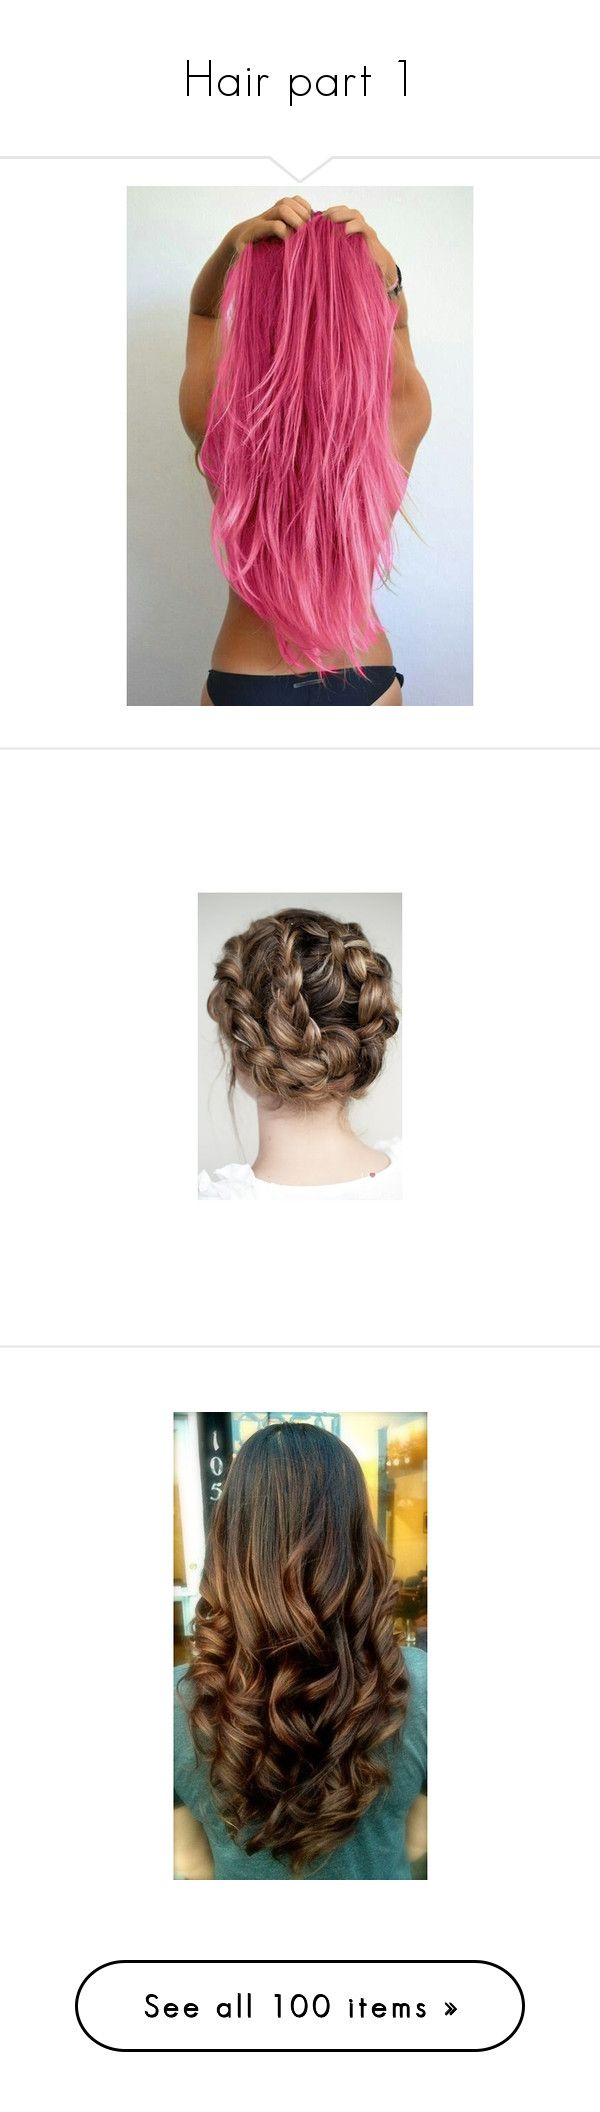 """""""Hair part 1"""" by sirius-james-remus ❤ liked on Polyvore featuring hair, hairstyles, włosy, beauty products, haircare, hair styling tools, cabelos, beauty, hair styles and coiffure"""